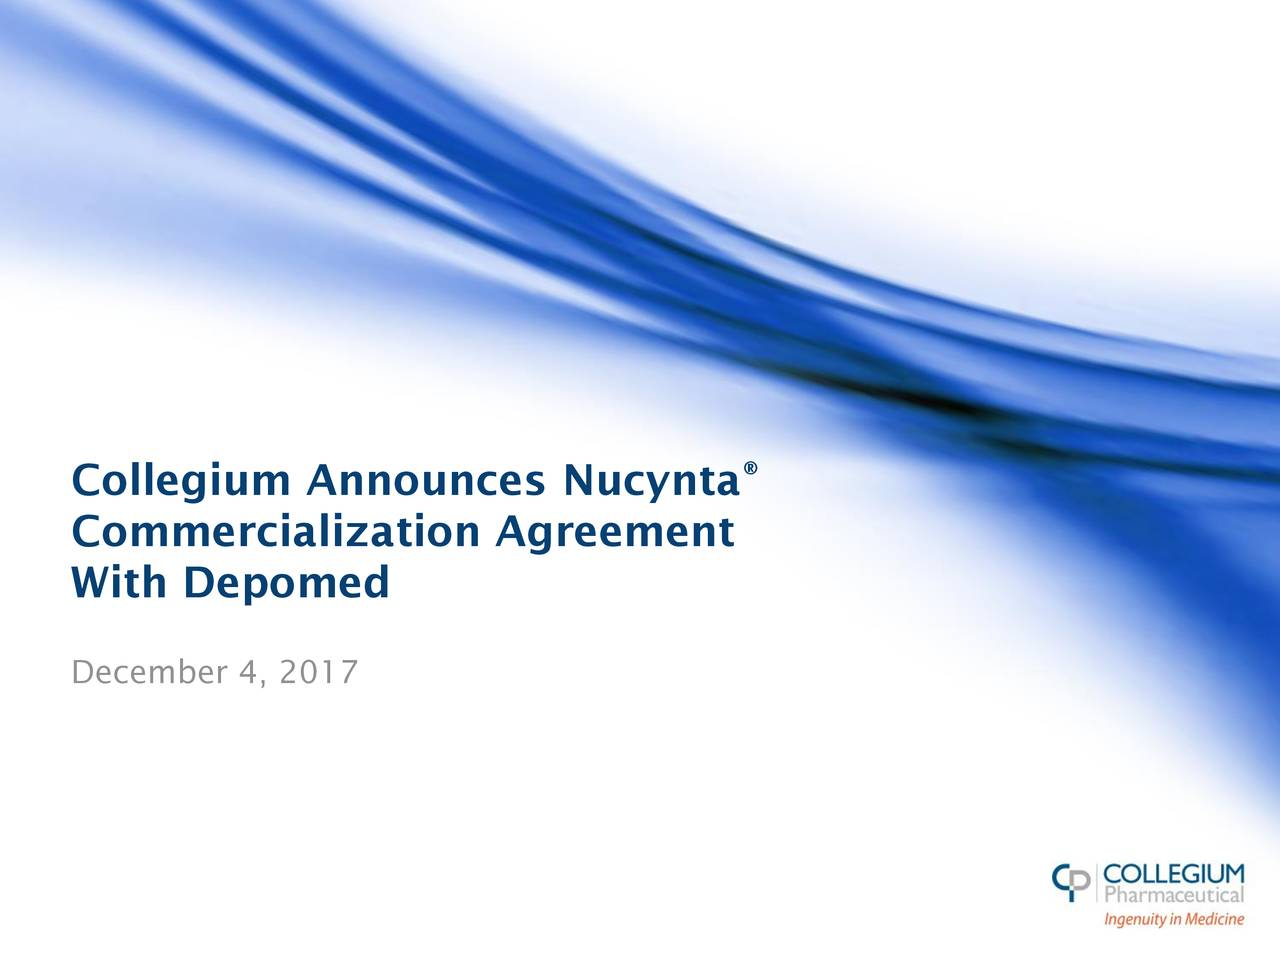 Commercialization Agreement With Depomed December 4, 2017